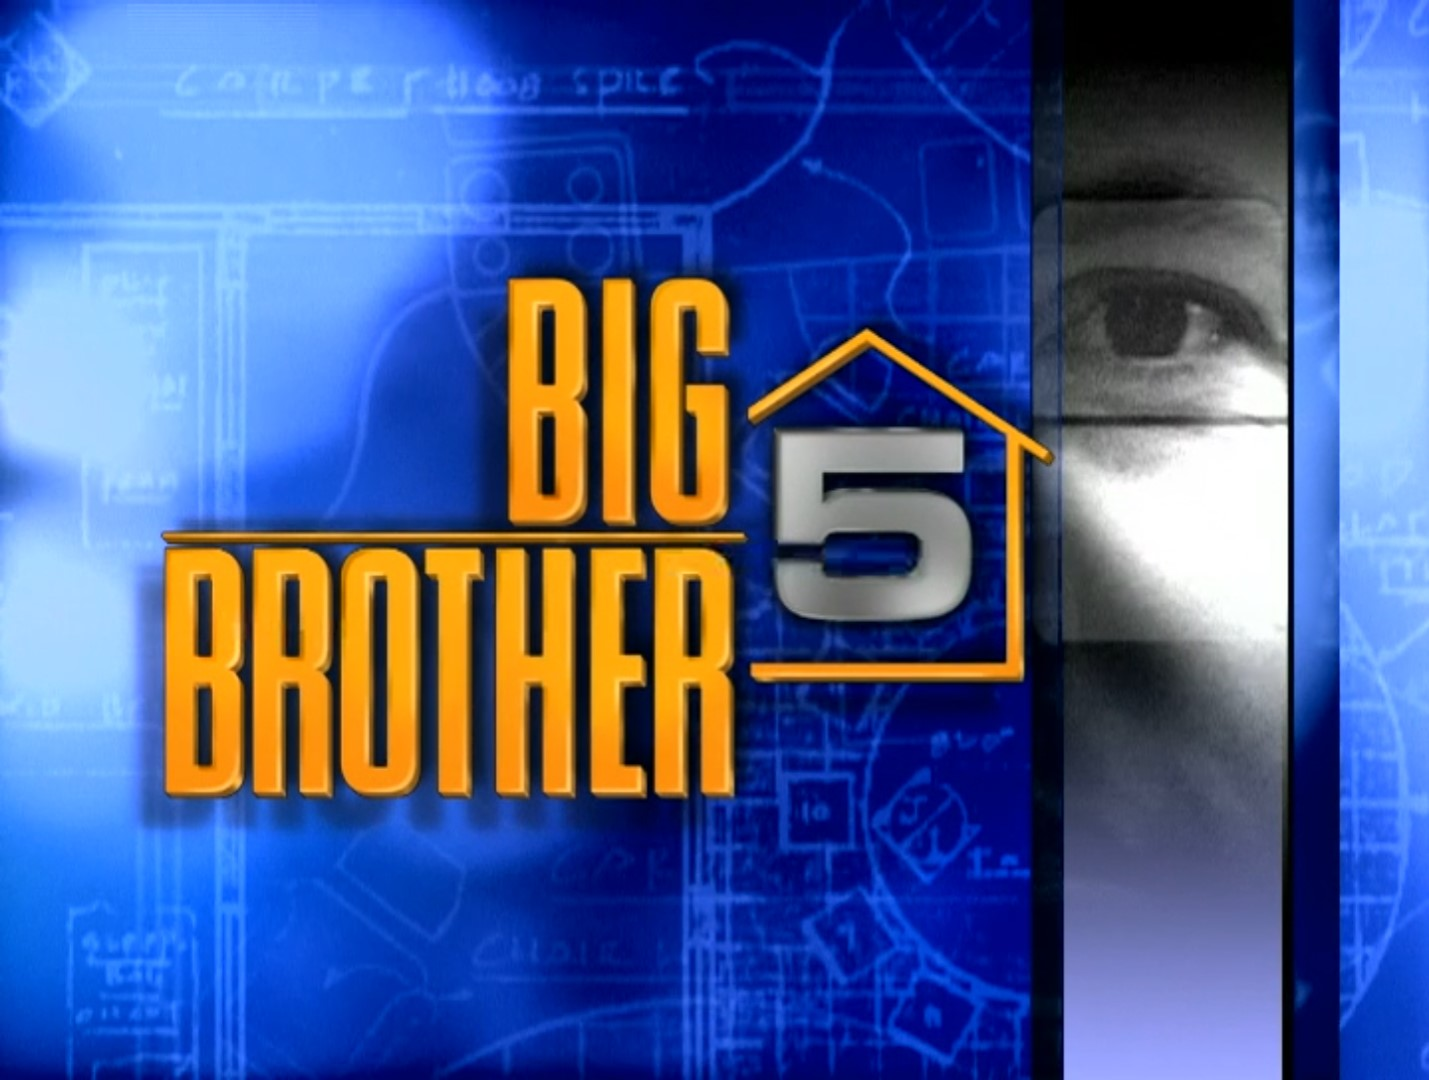 Big Brother 5 (US)